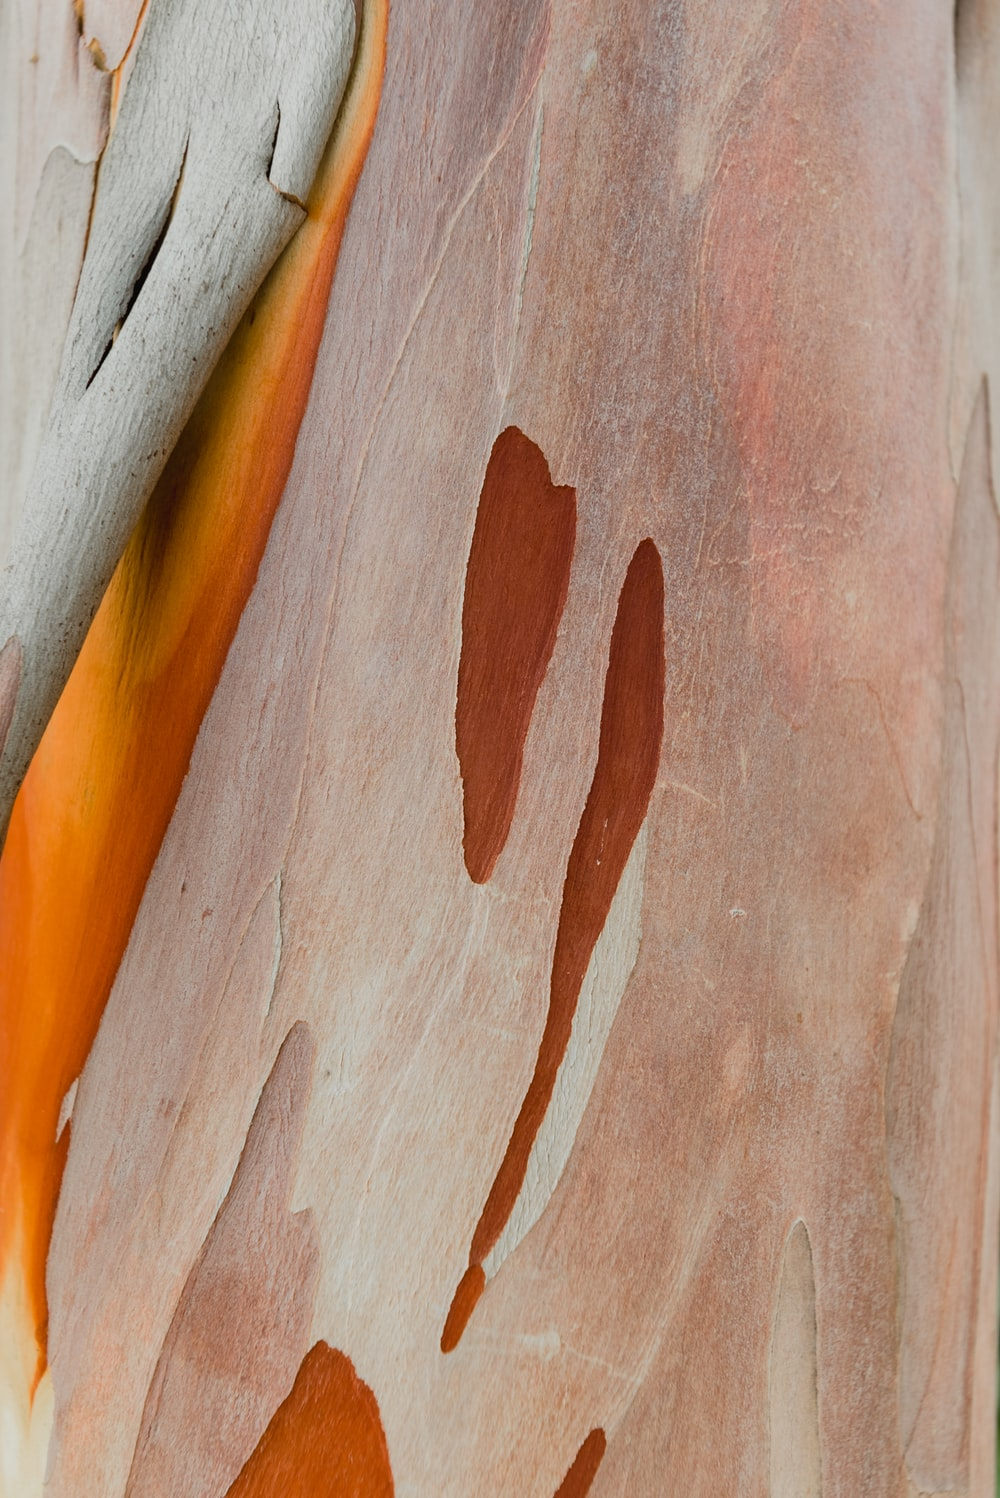 brown and white wooden surface